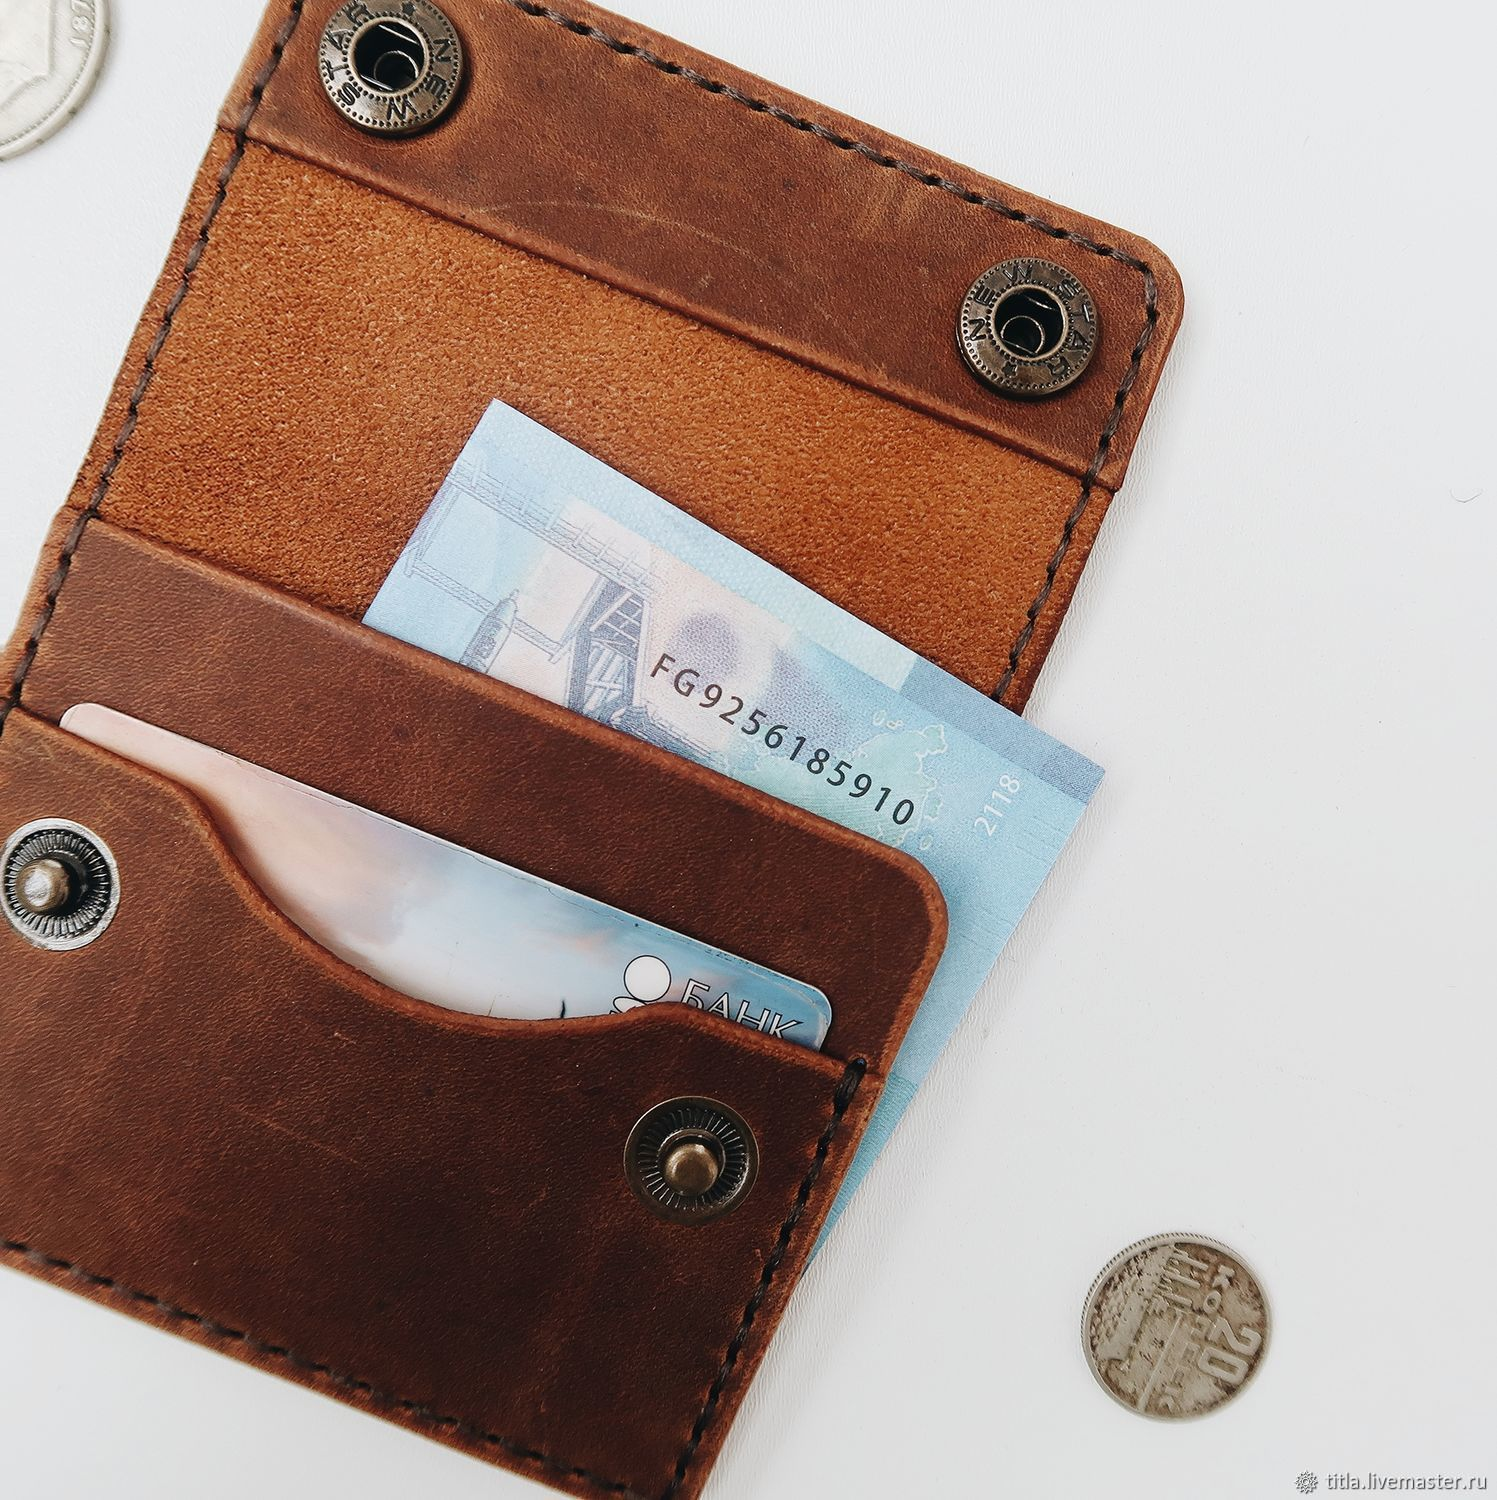 Mini wallet made of crazy horse leather, Wallets, St. Petersburg,  Фото №1